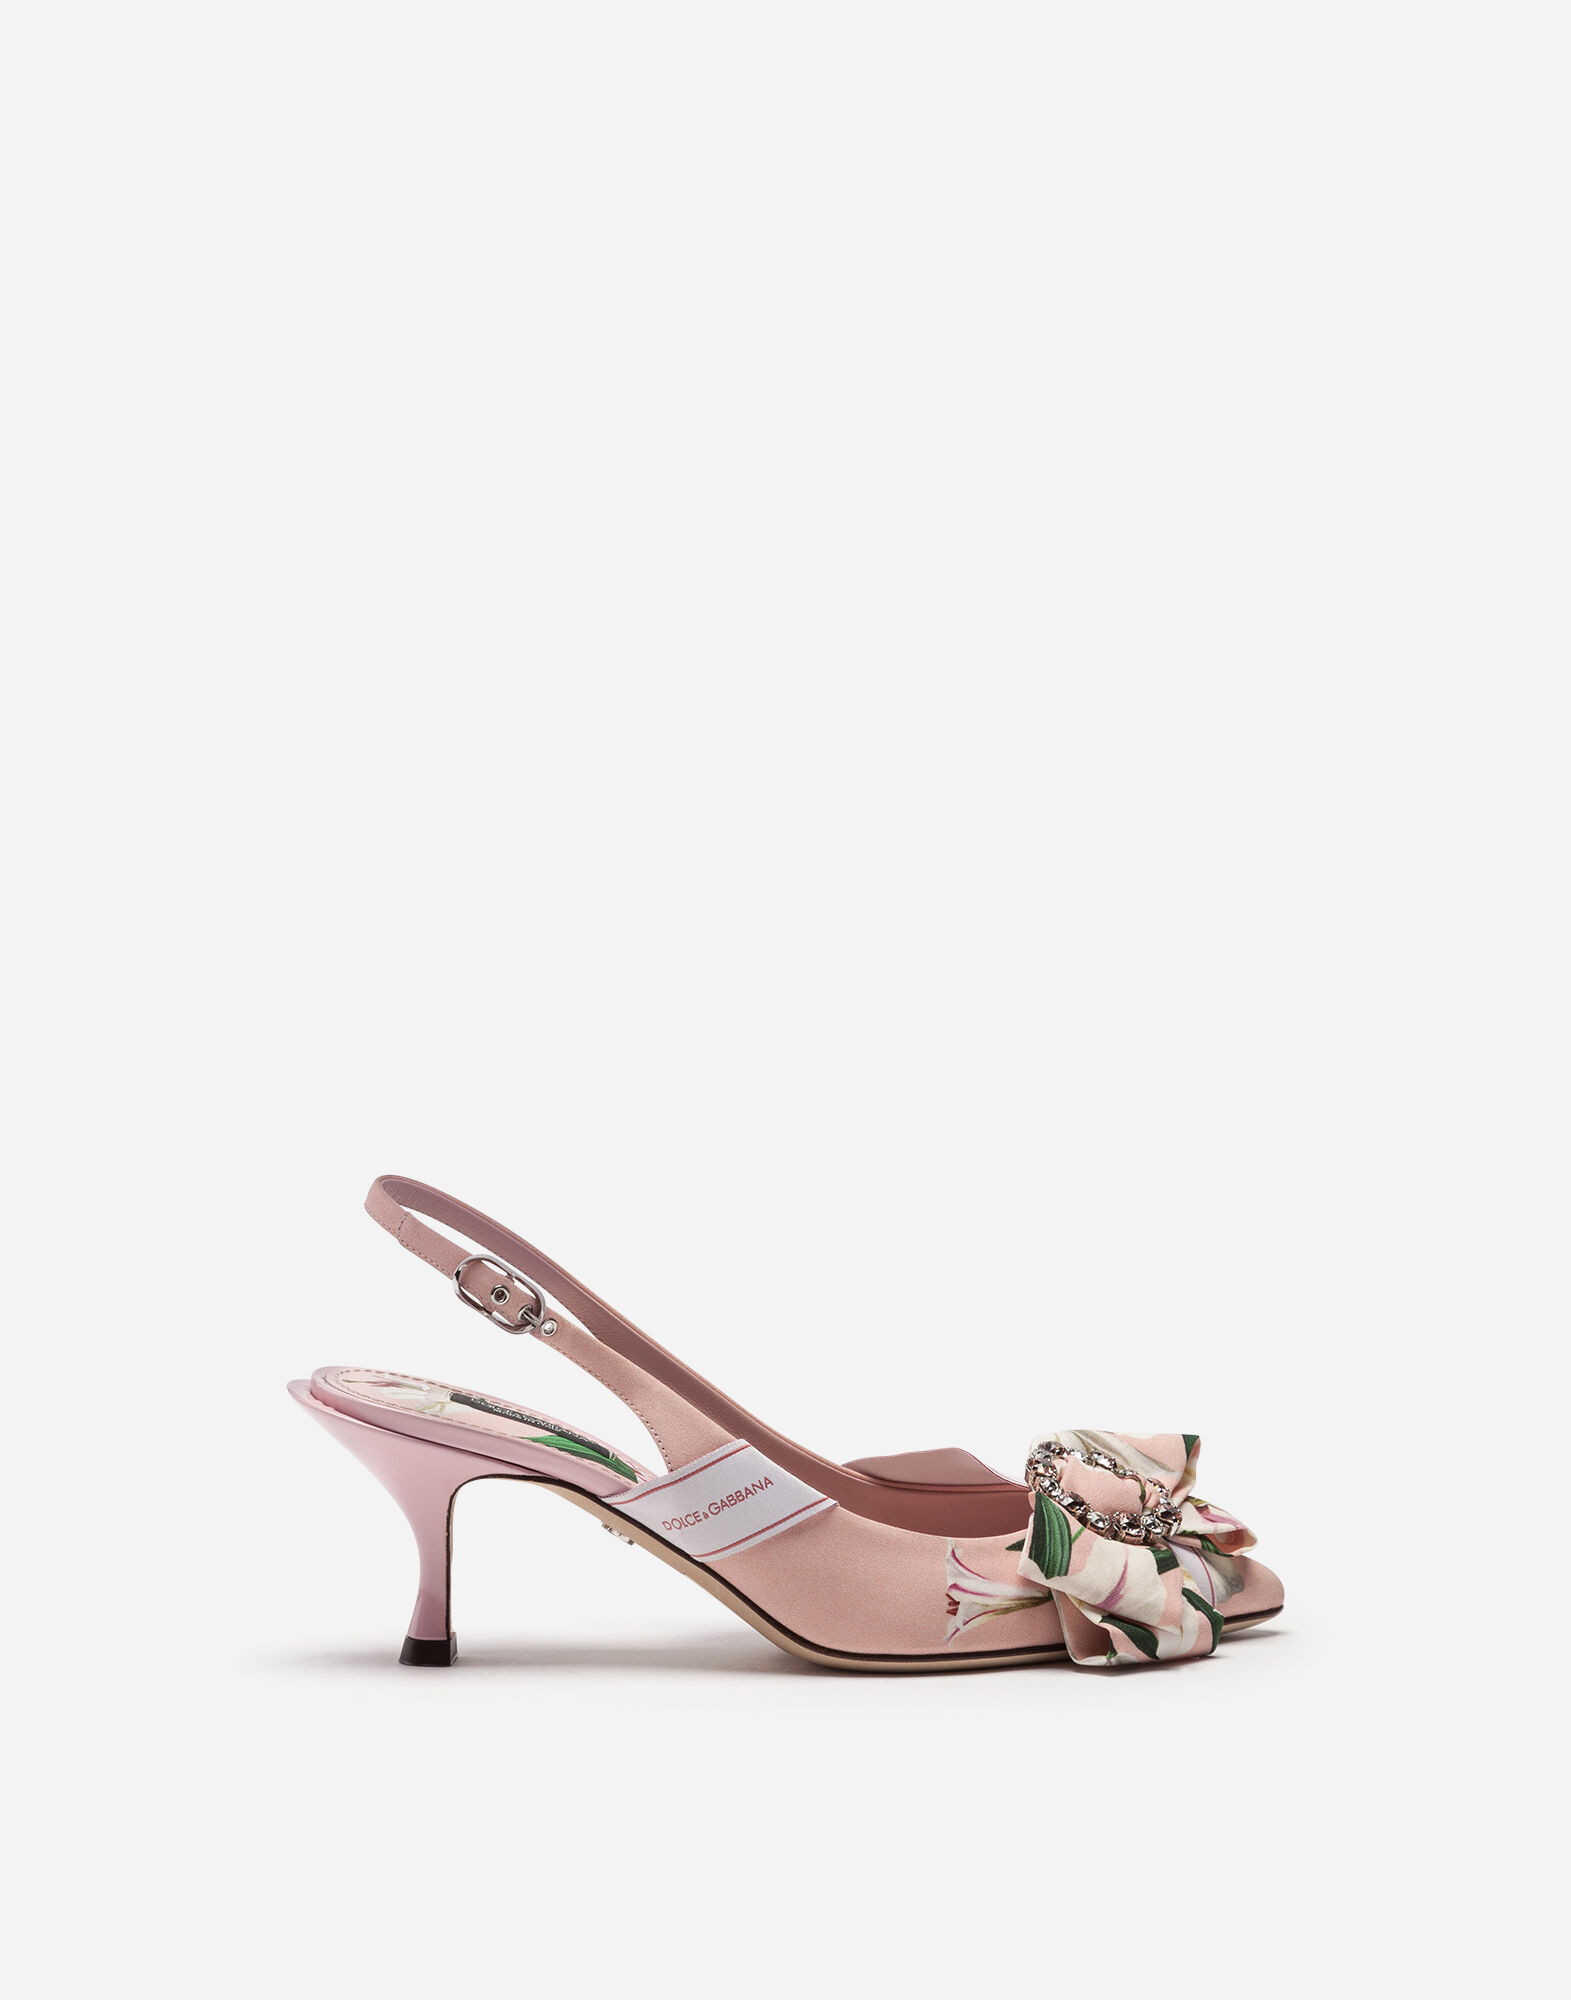 Women For And FootwearDolce amp;gabbana Shoes VGqSMLjUzp